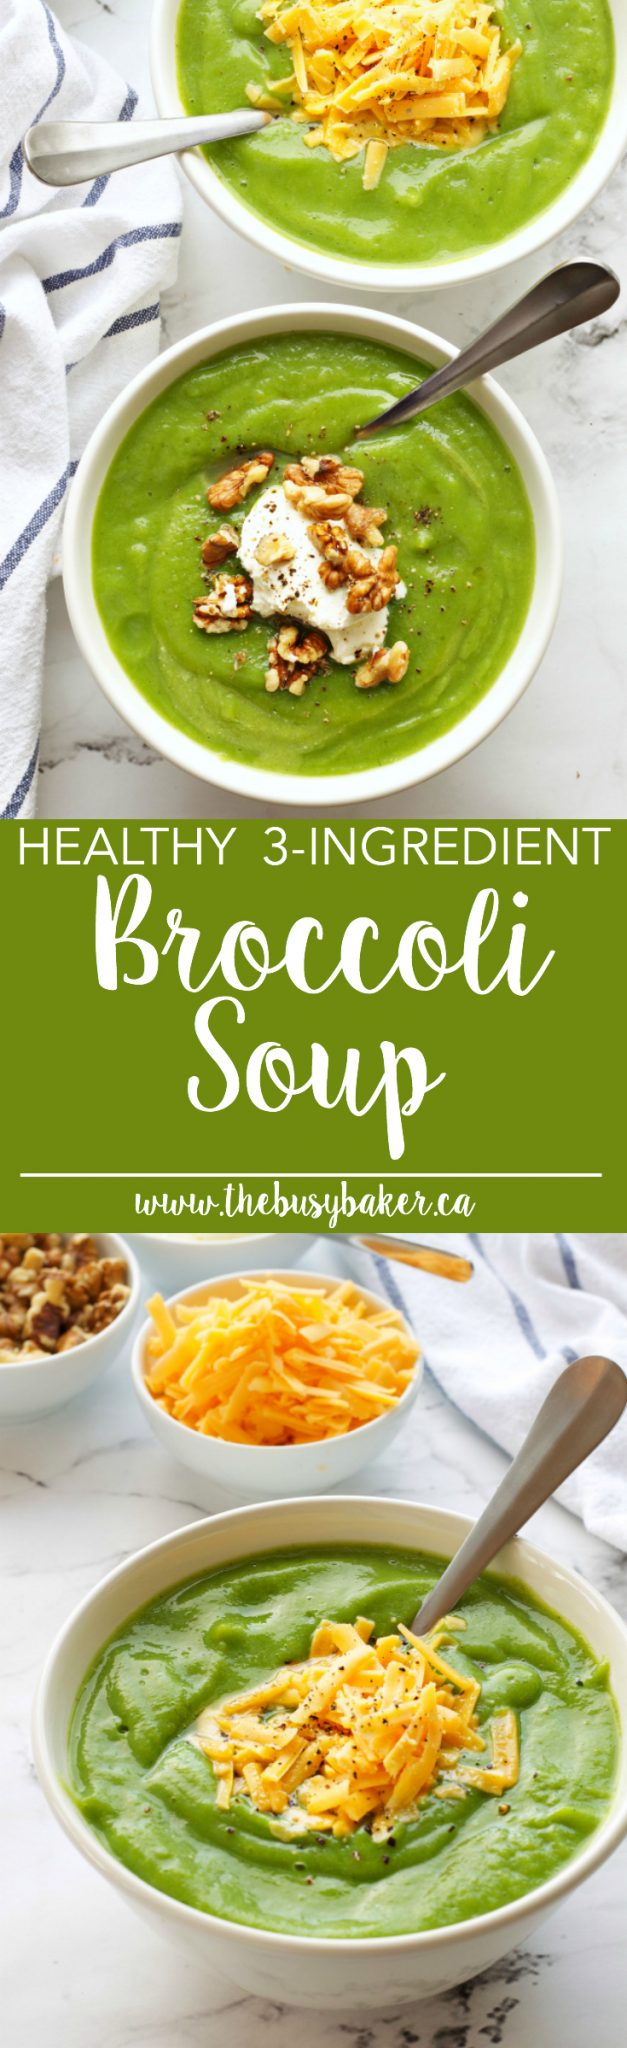 This Healthy 3 Ingredient Broccoli Soup is the perfect easy healthy recipe! Just 3 simple ingredients and a blender is all you need! Recipe from thebusybaker.ca! via @busybakerblog